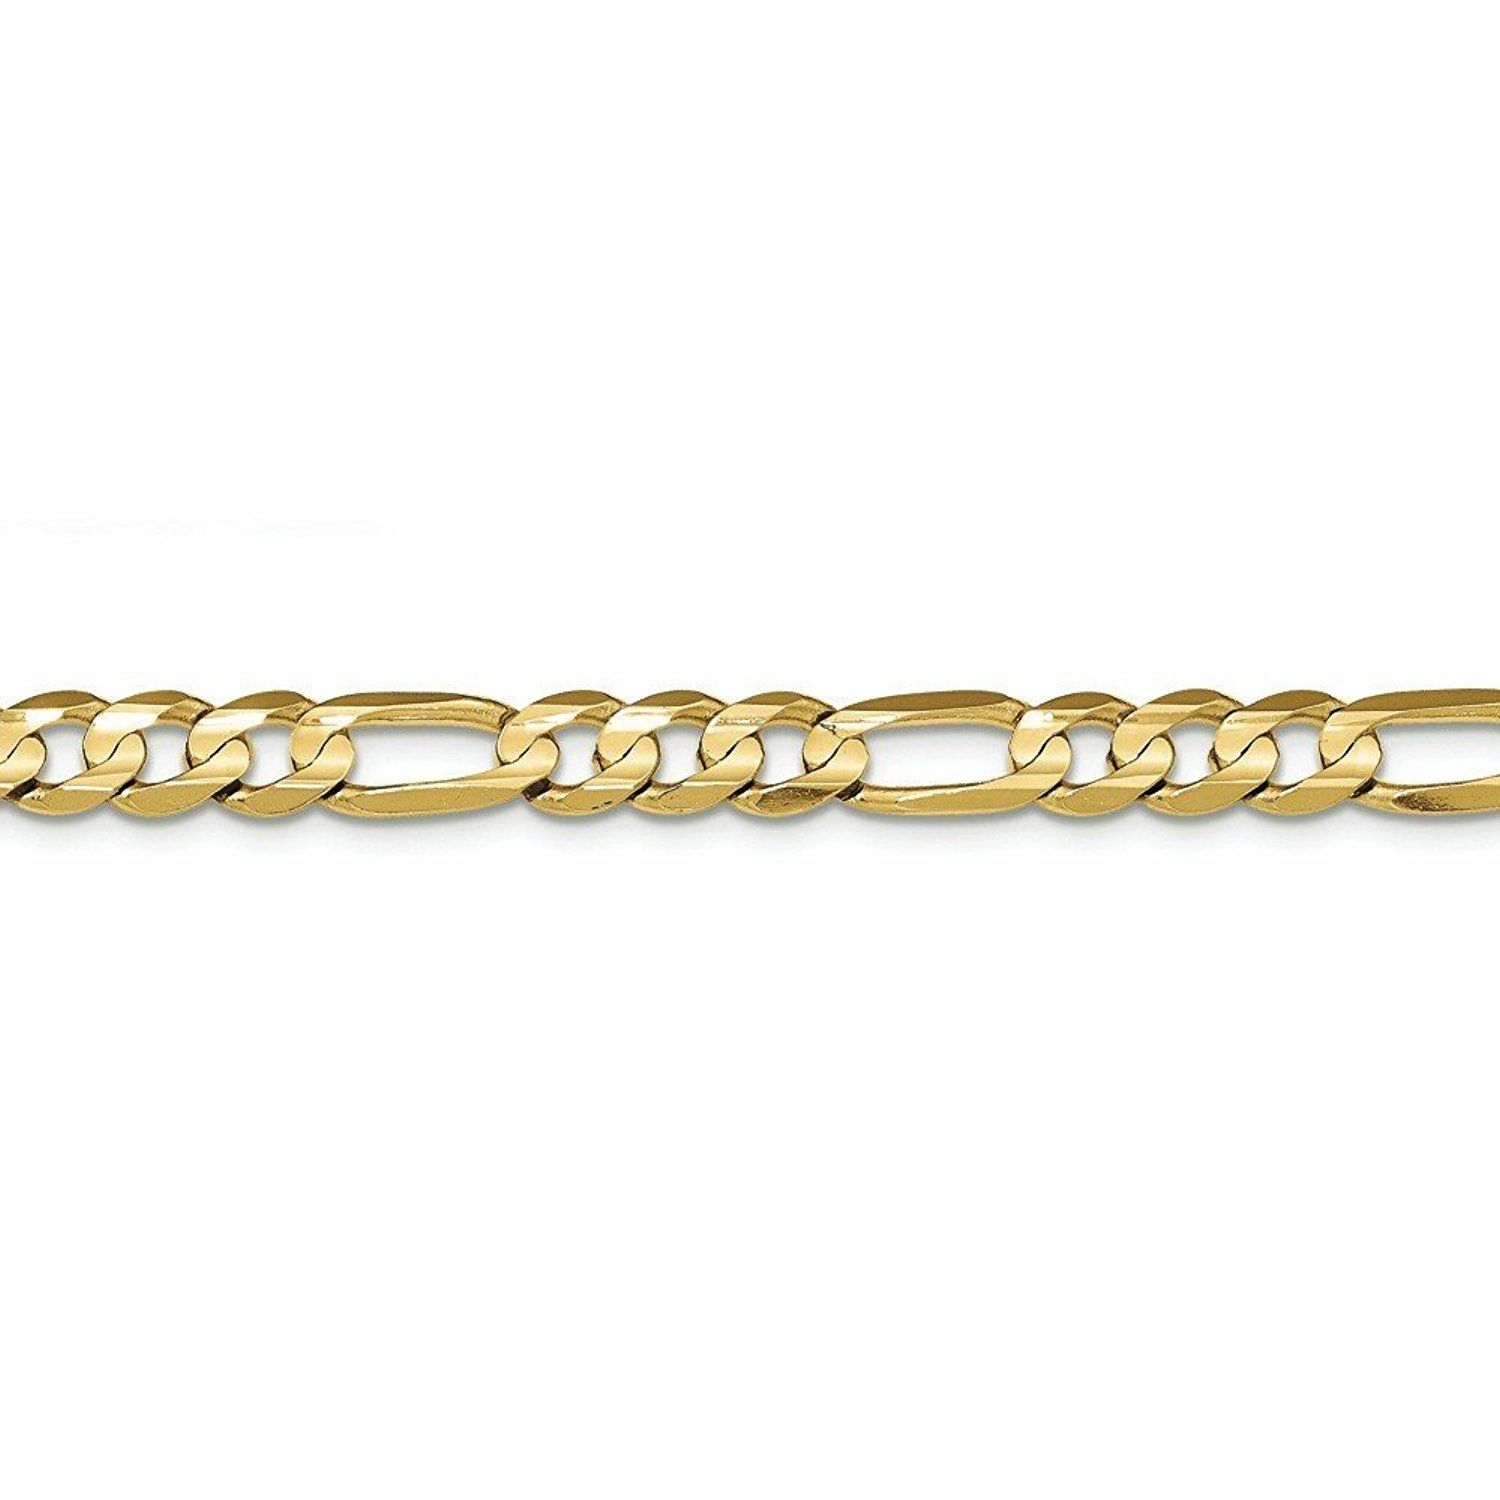 long bracelet box vermeil silver gold sterling all sizes necklace anklet small solid chain